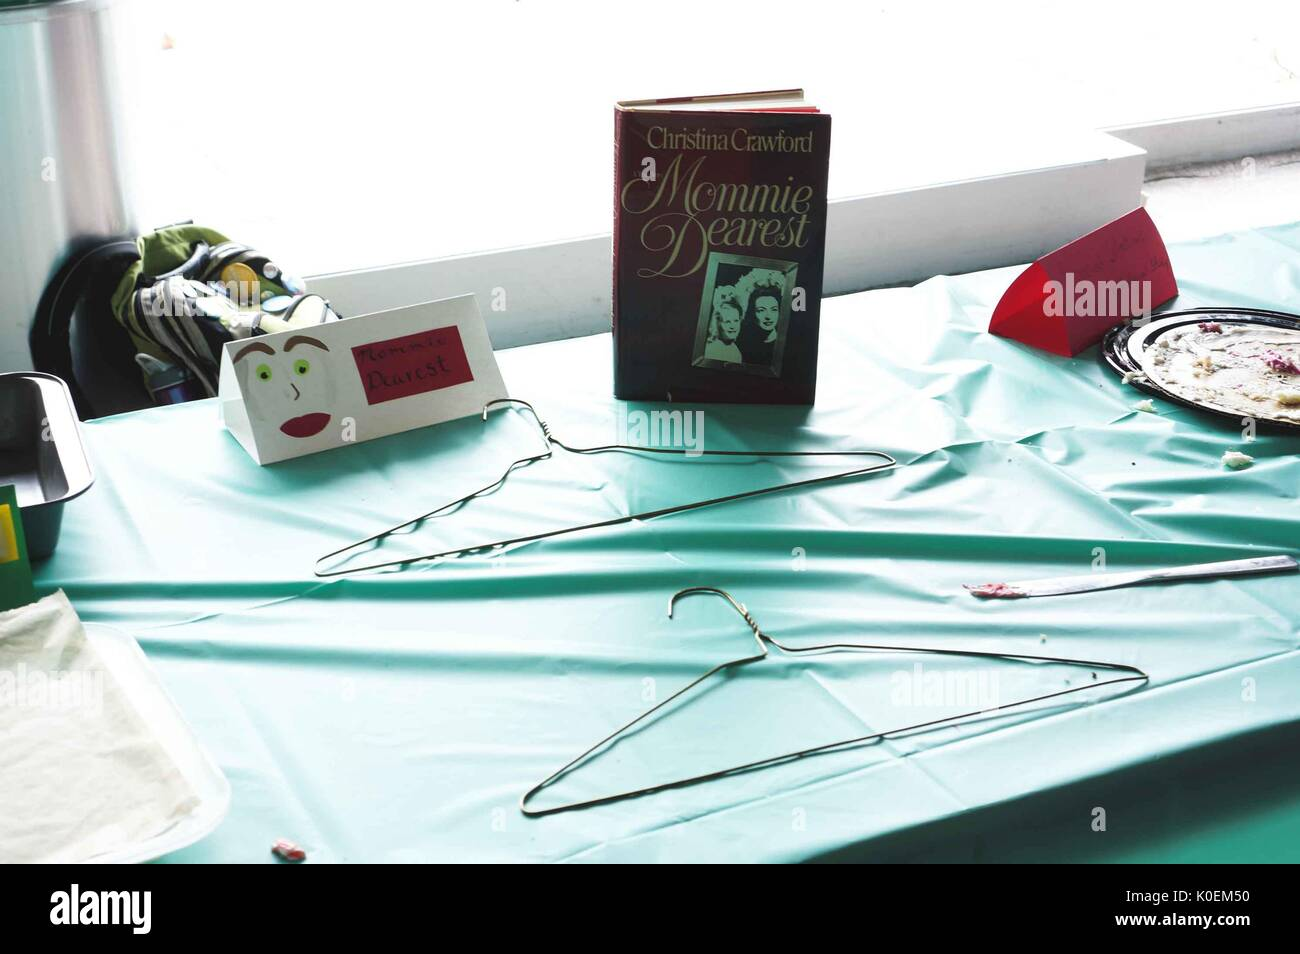 Wire Hangers Stock Photos & Wire Hangers Stock Images - Alamy